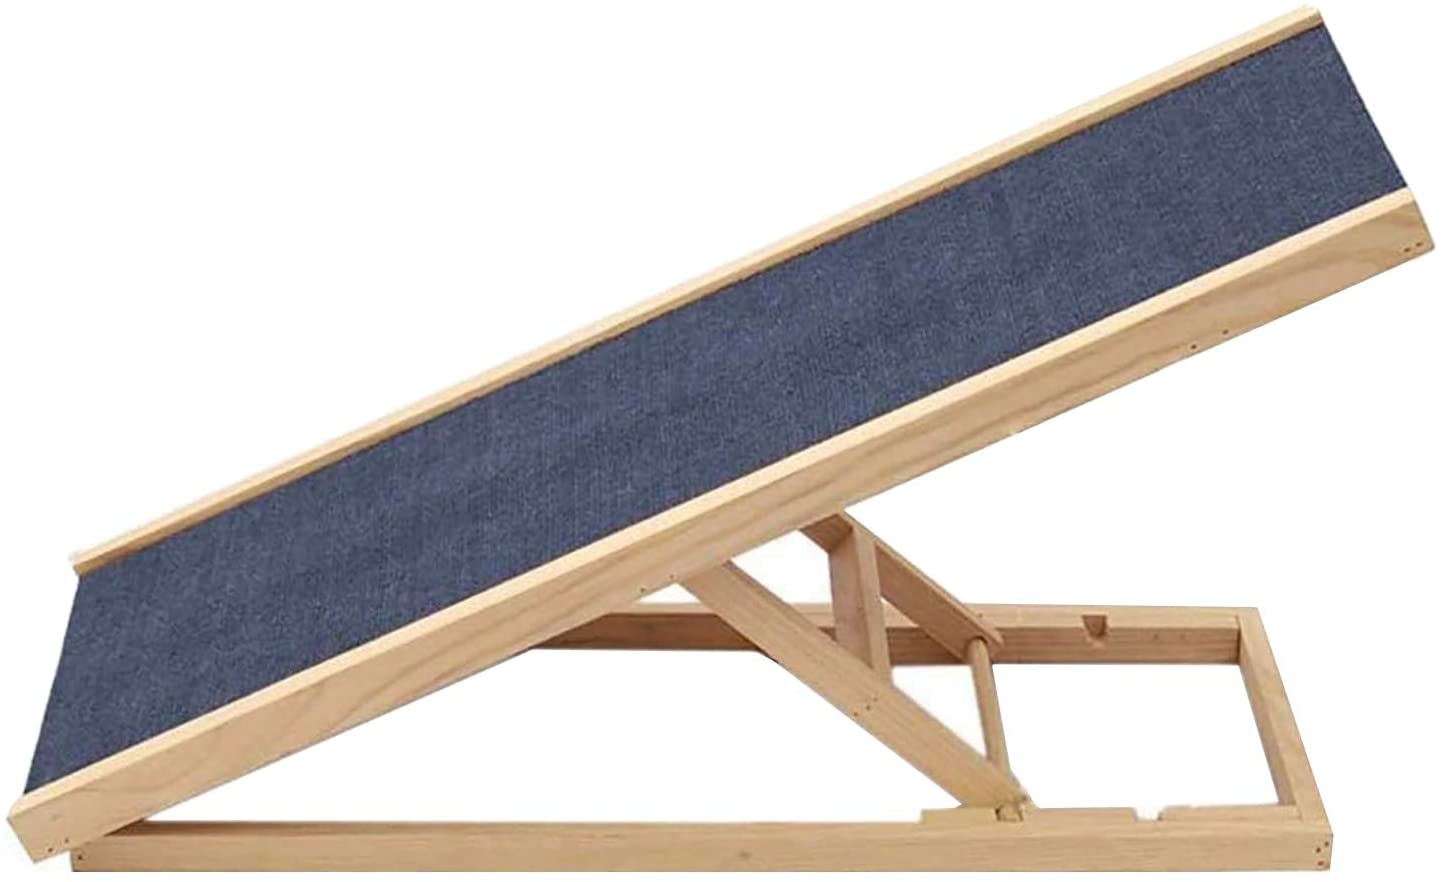 Wood Halloween Pet Ramp, Dog/Cat Easy Step, Extra Foldable Portable Dog Ramp for Dogs/Cats up to 90lbs,Lightweight Dog Car Ramps Stairs for Cars, Trucks and Suvs, Dog Safety Ramps for Small/Large Dogs